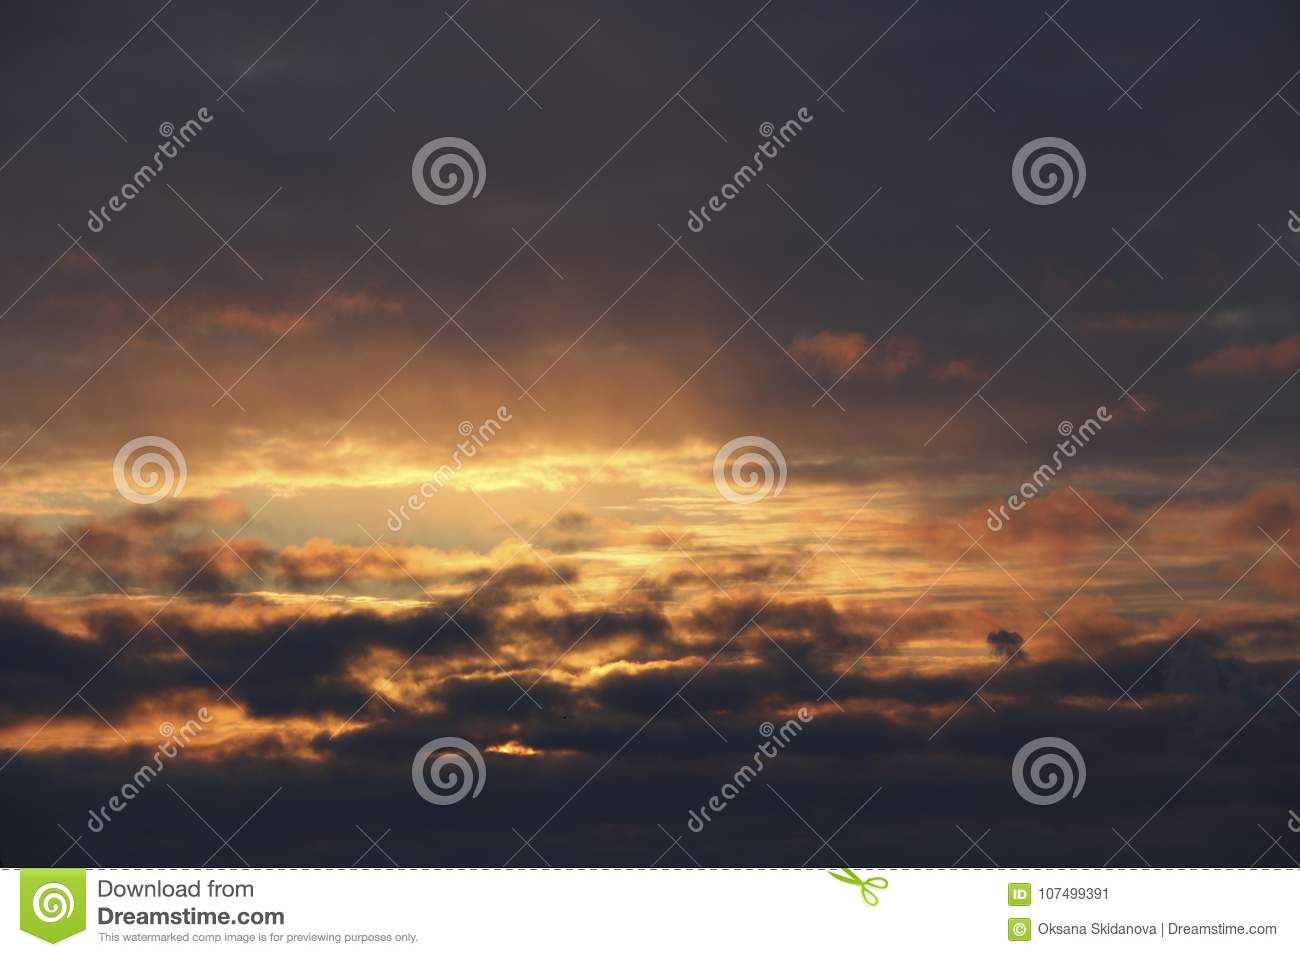 Sunset The Evening Winter Sky In Dense Dark Clouds The